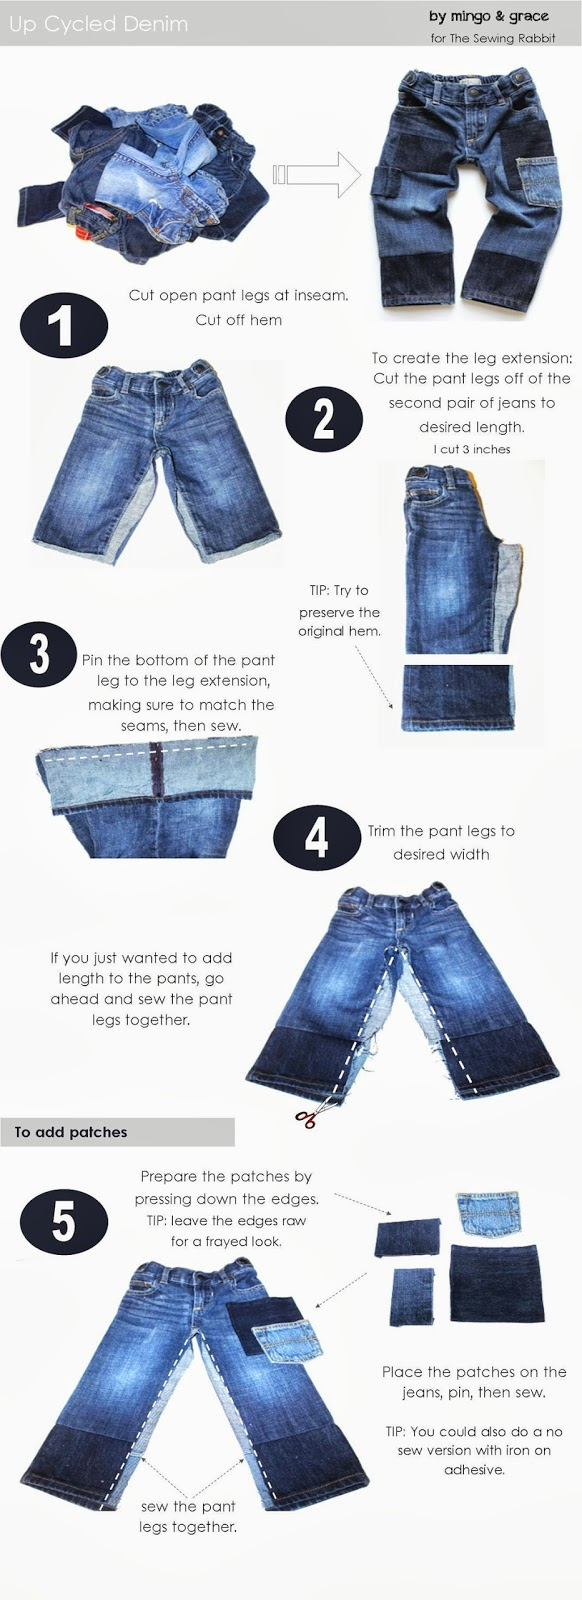 mingoandgrace+upcycled+denim+1.jpg